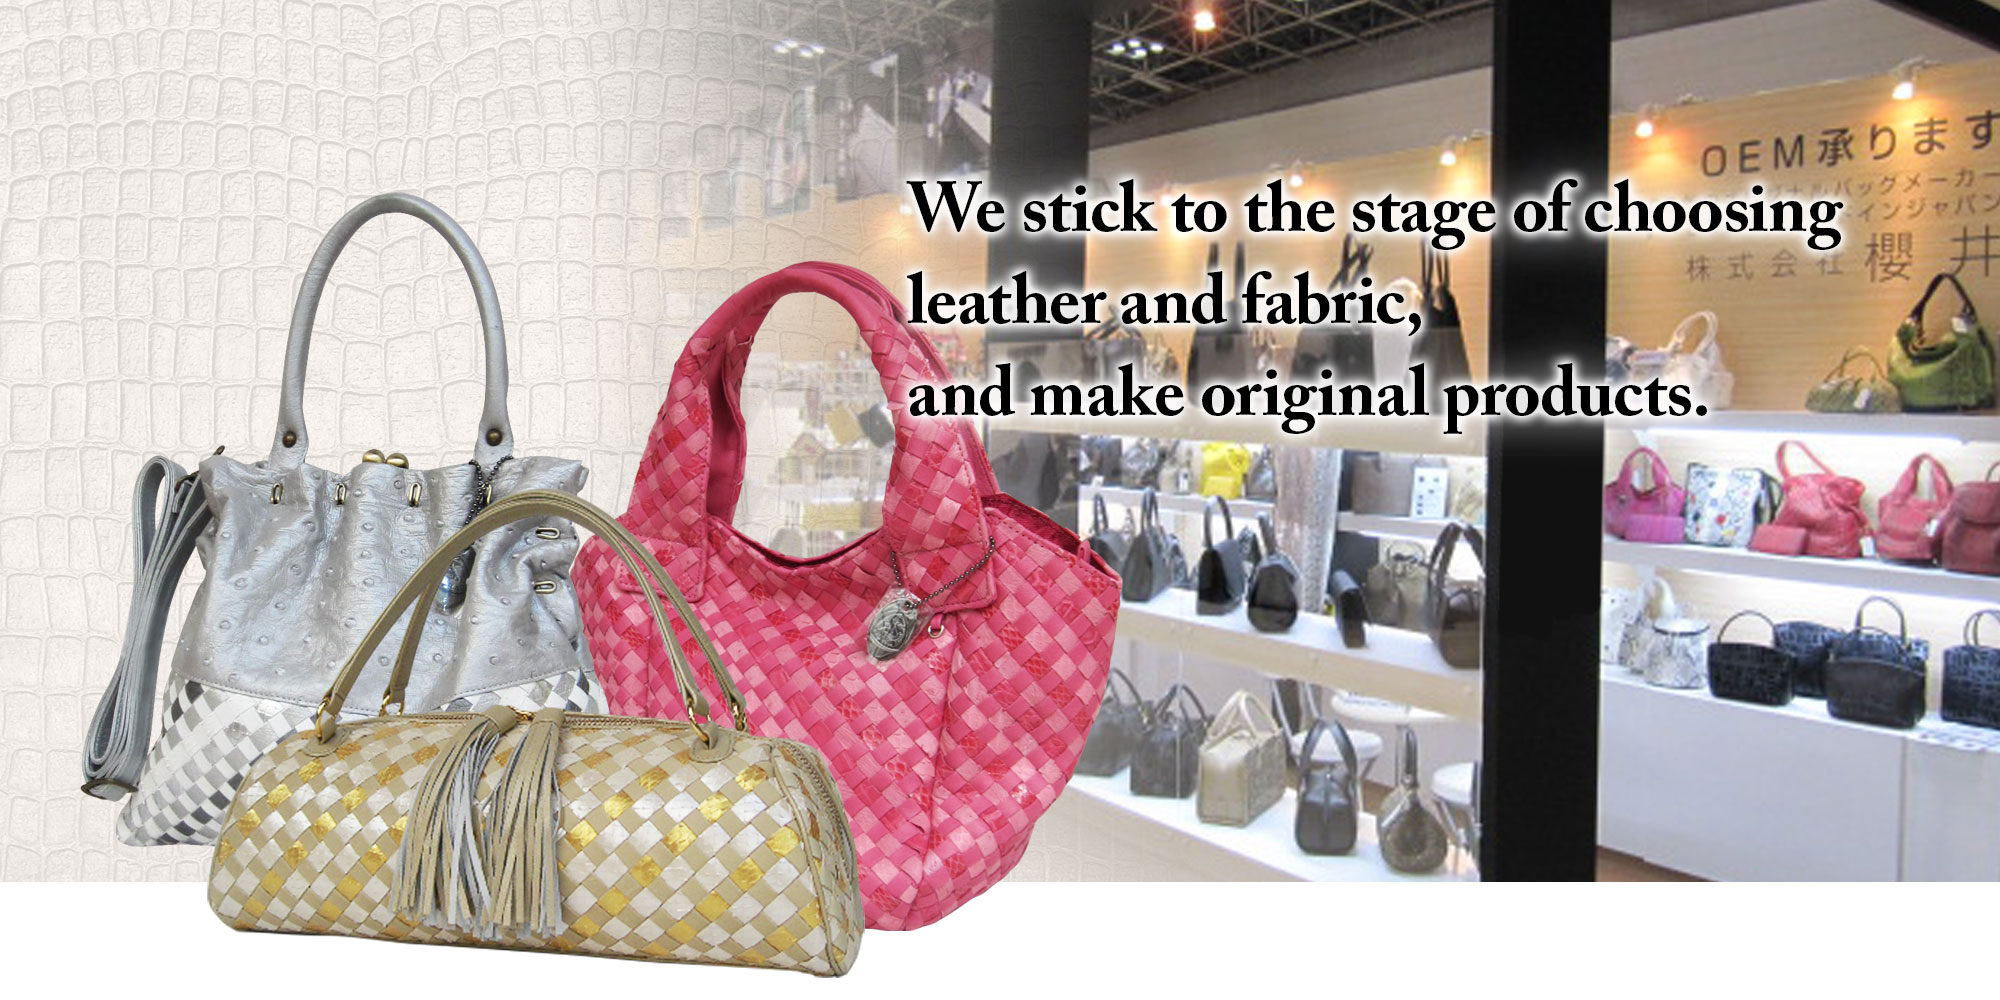 We stick to the stage of choosing leather and fabric, and make original products.